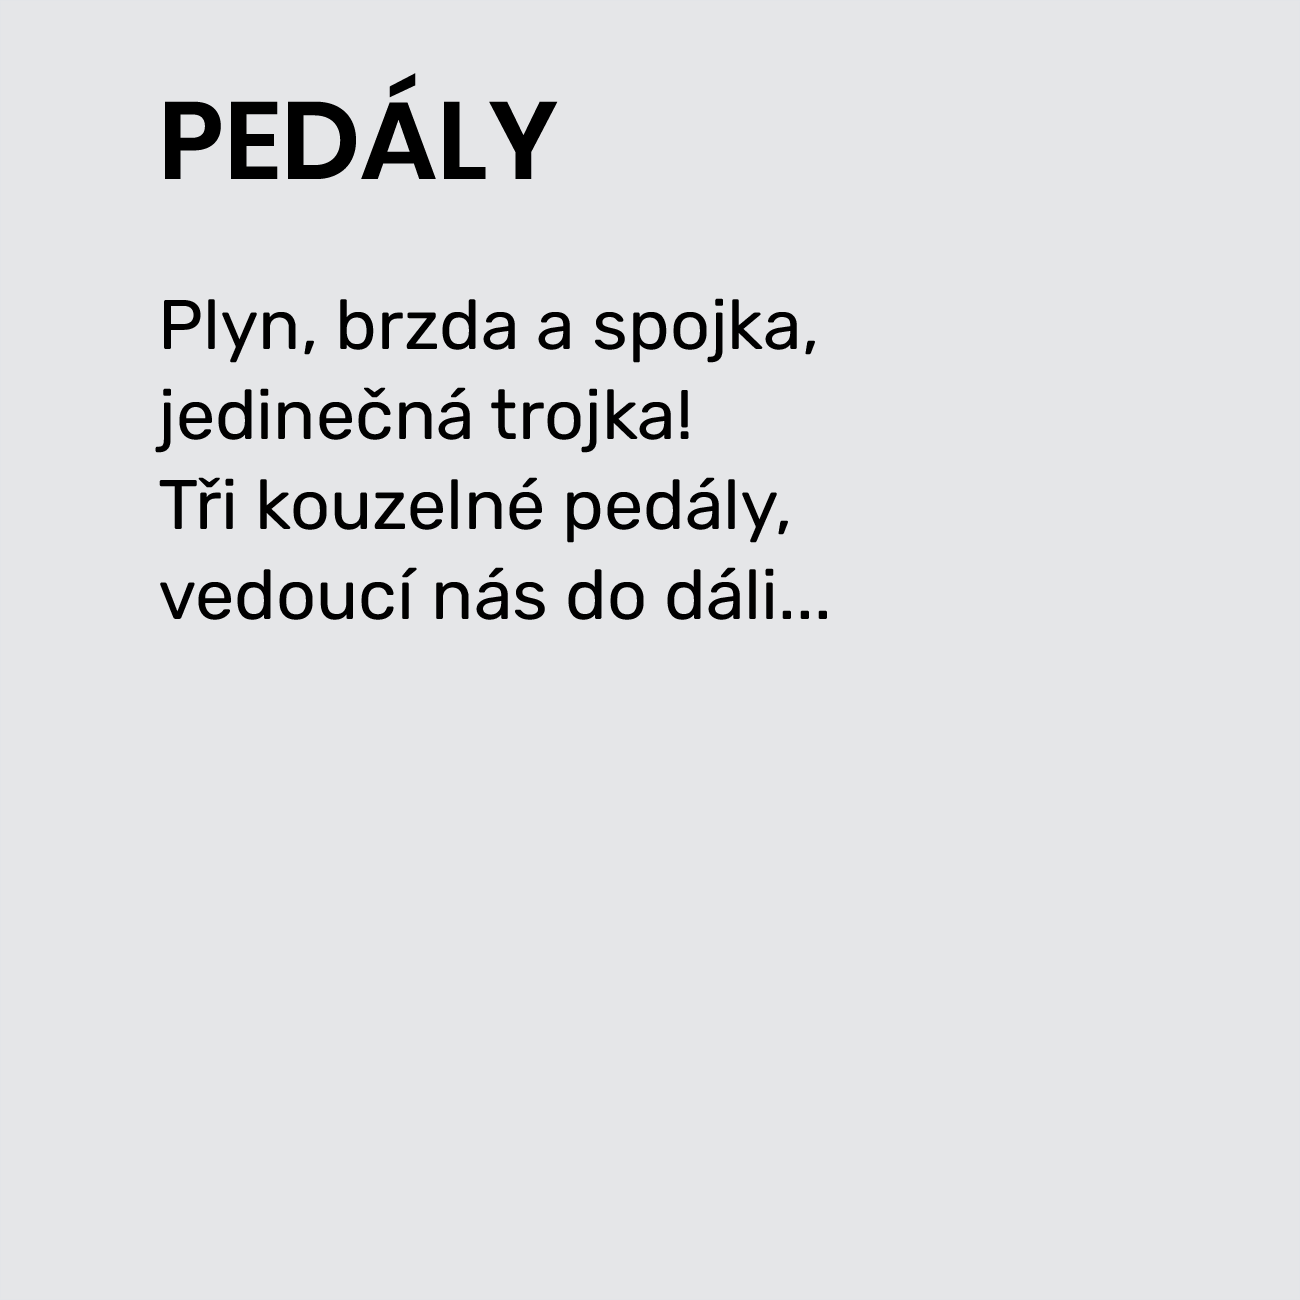 PEDÁLY